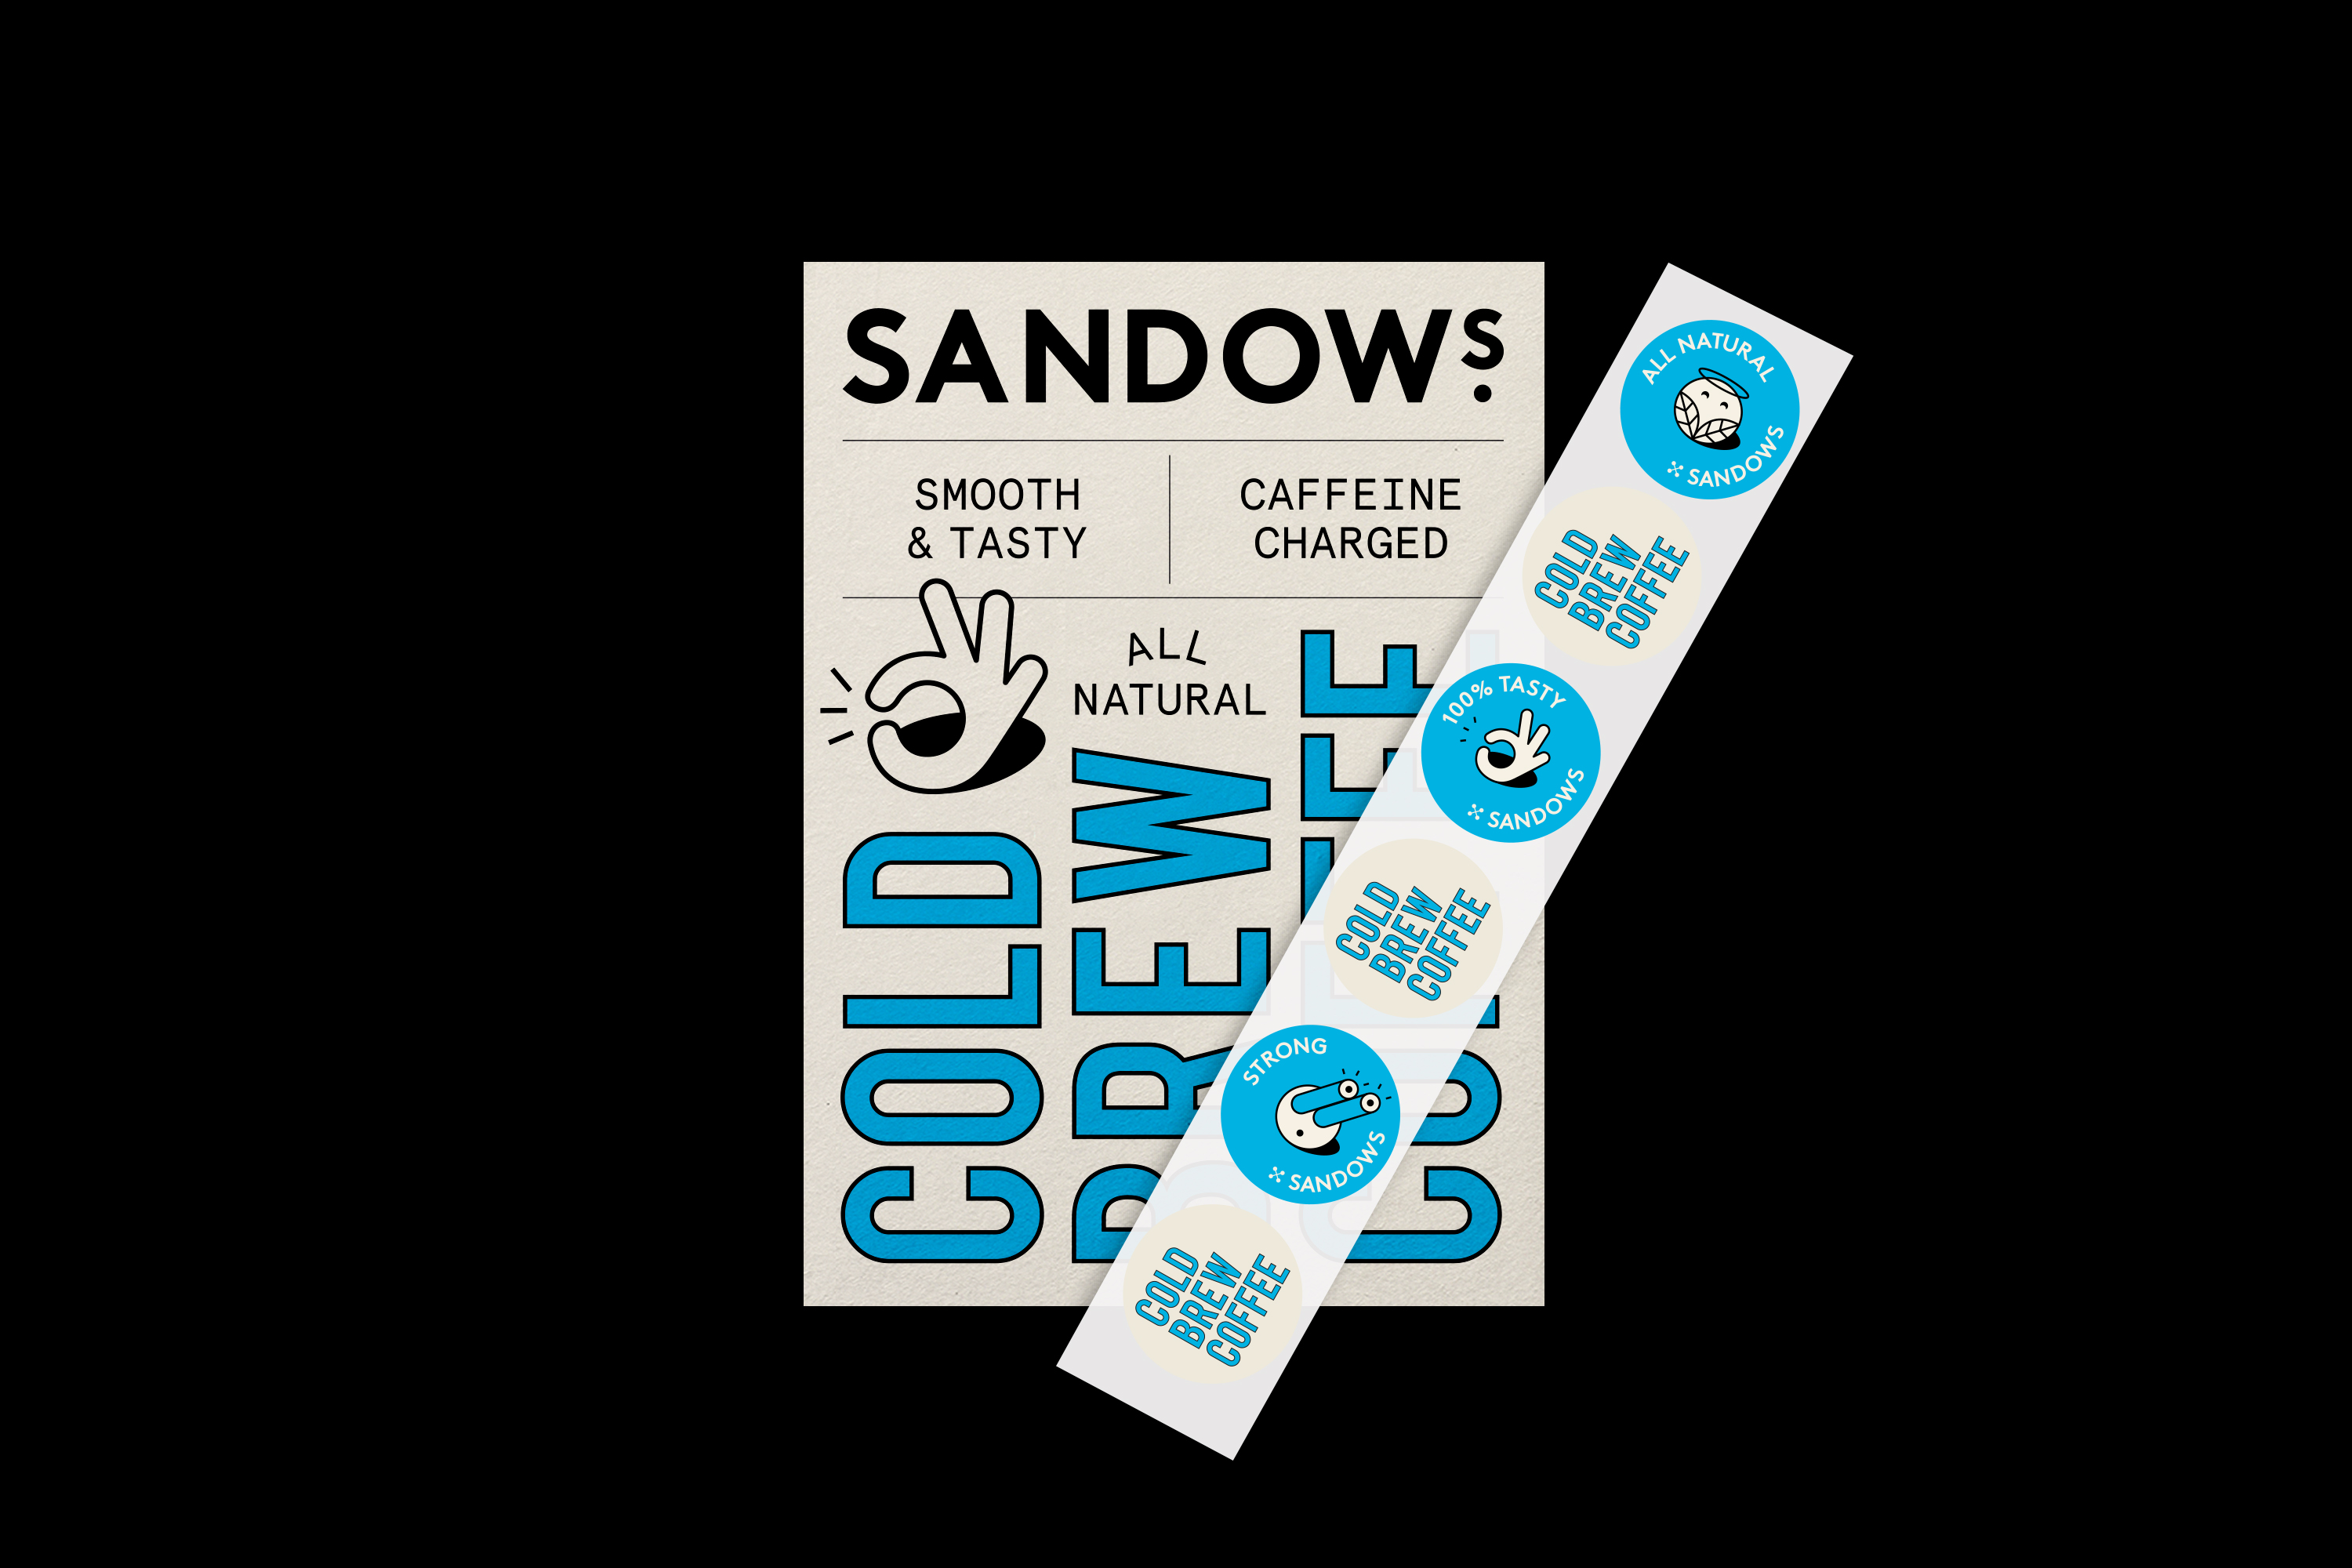 Sandows Cold Brew Coffee - Fonts In Use